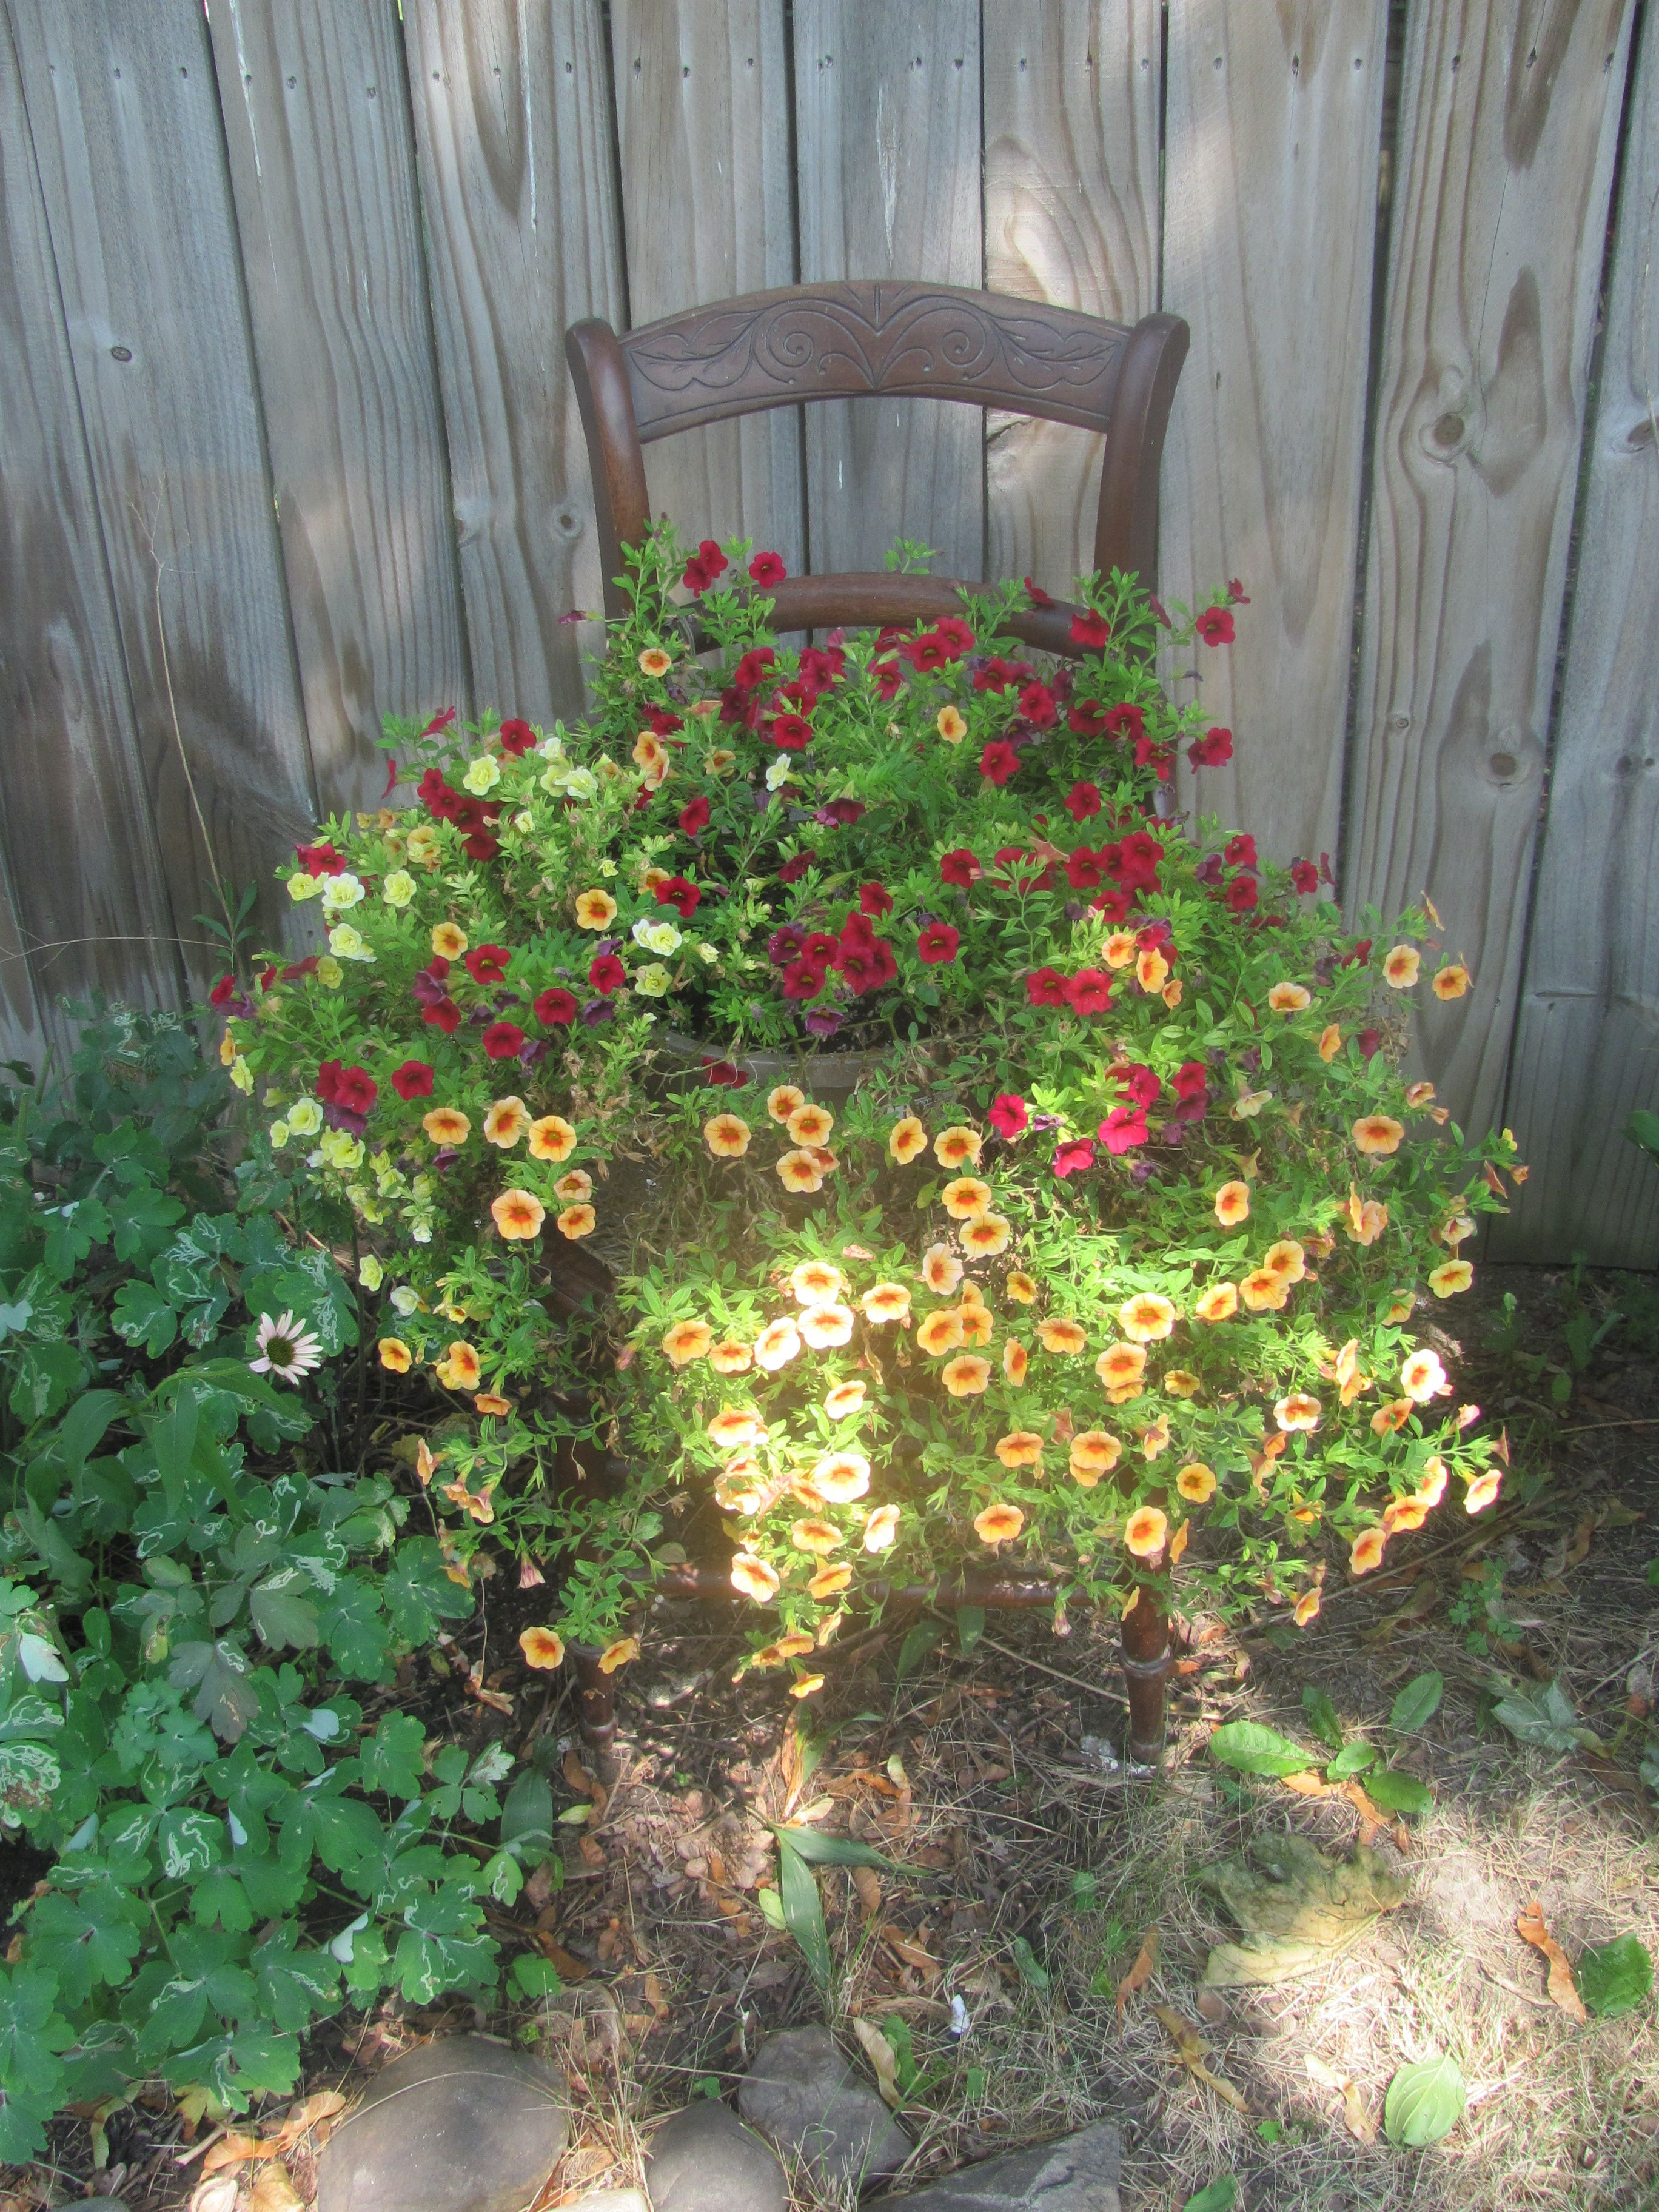 Someone put this chair out to the trash, wicker seat a little torn, brought it home & put a plant on it.  Doesn't get easier than this!